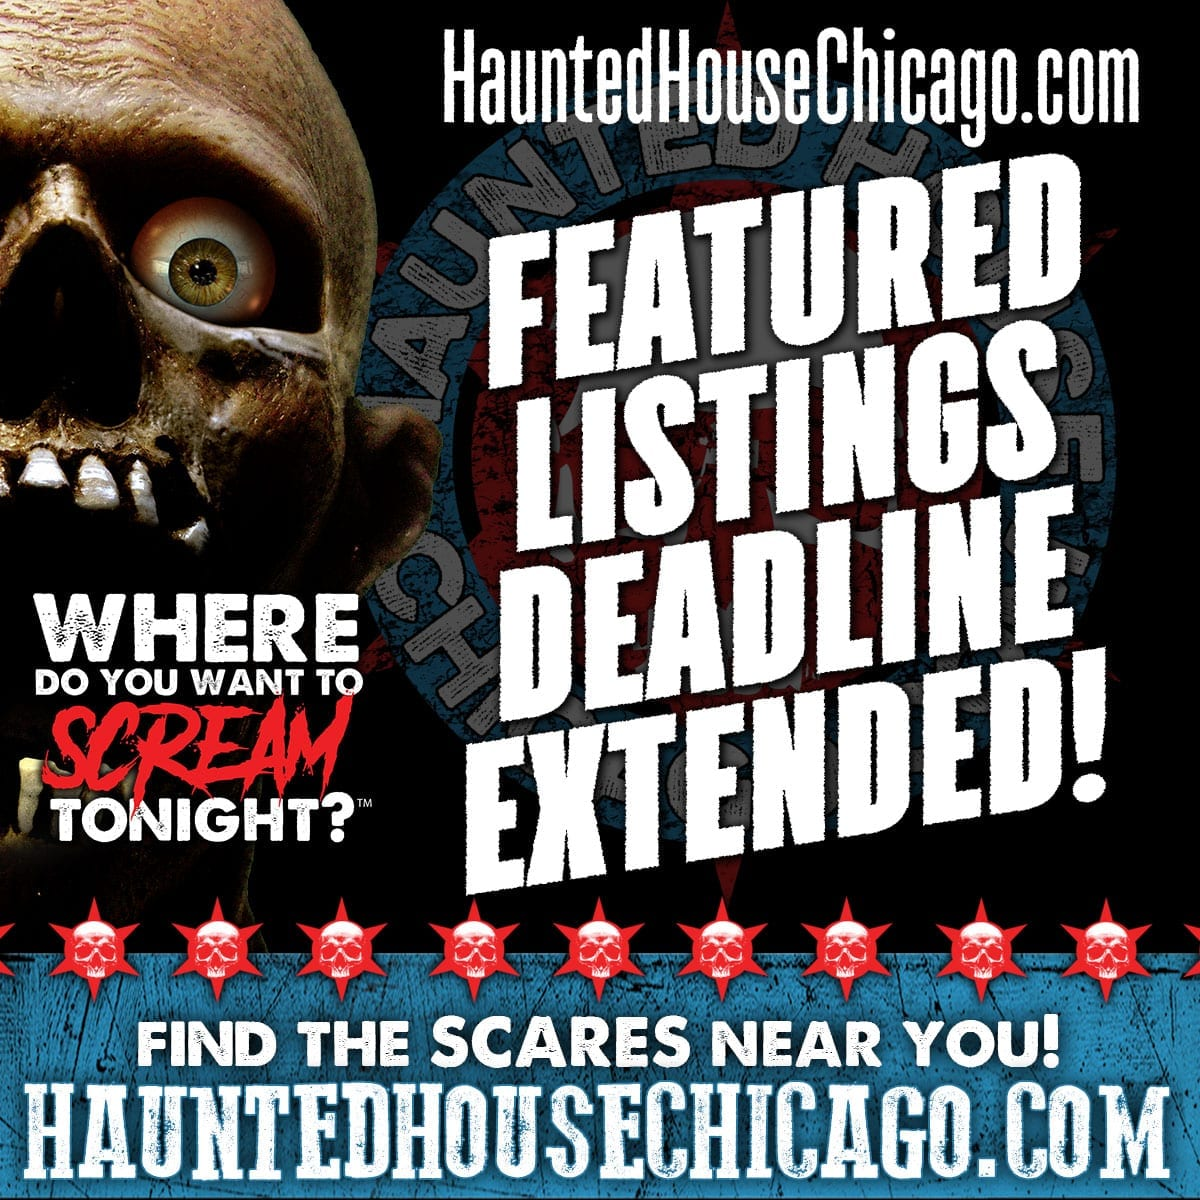 Featured Listing Early Bird Discount Deadline Extended